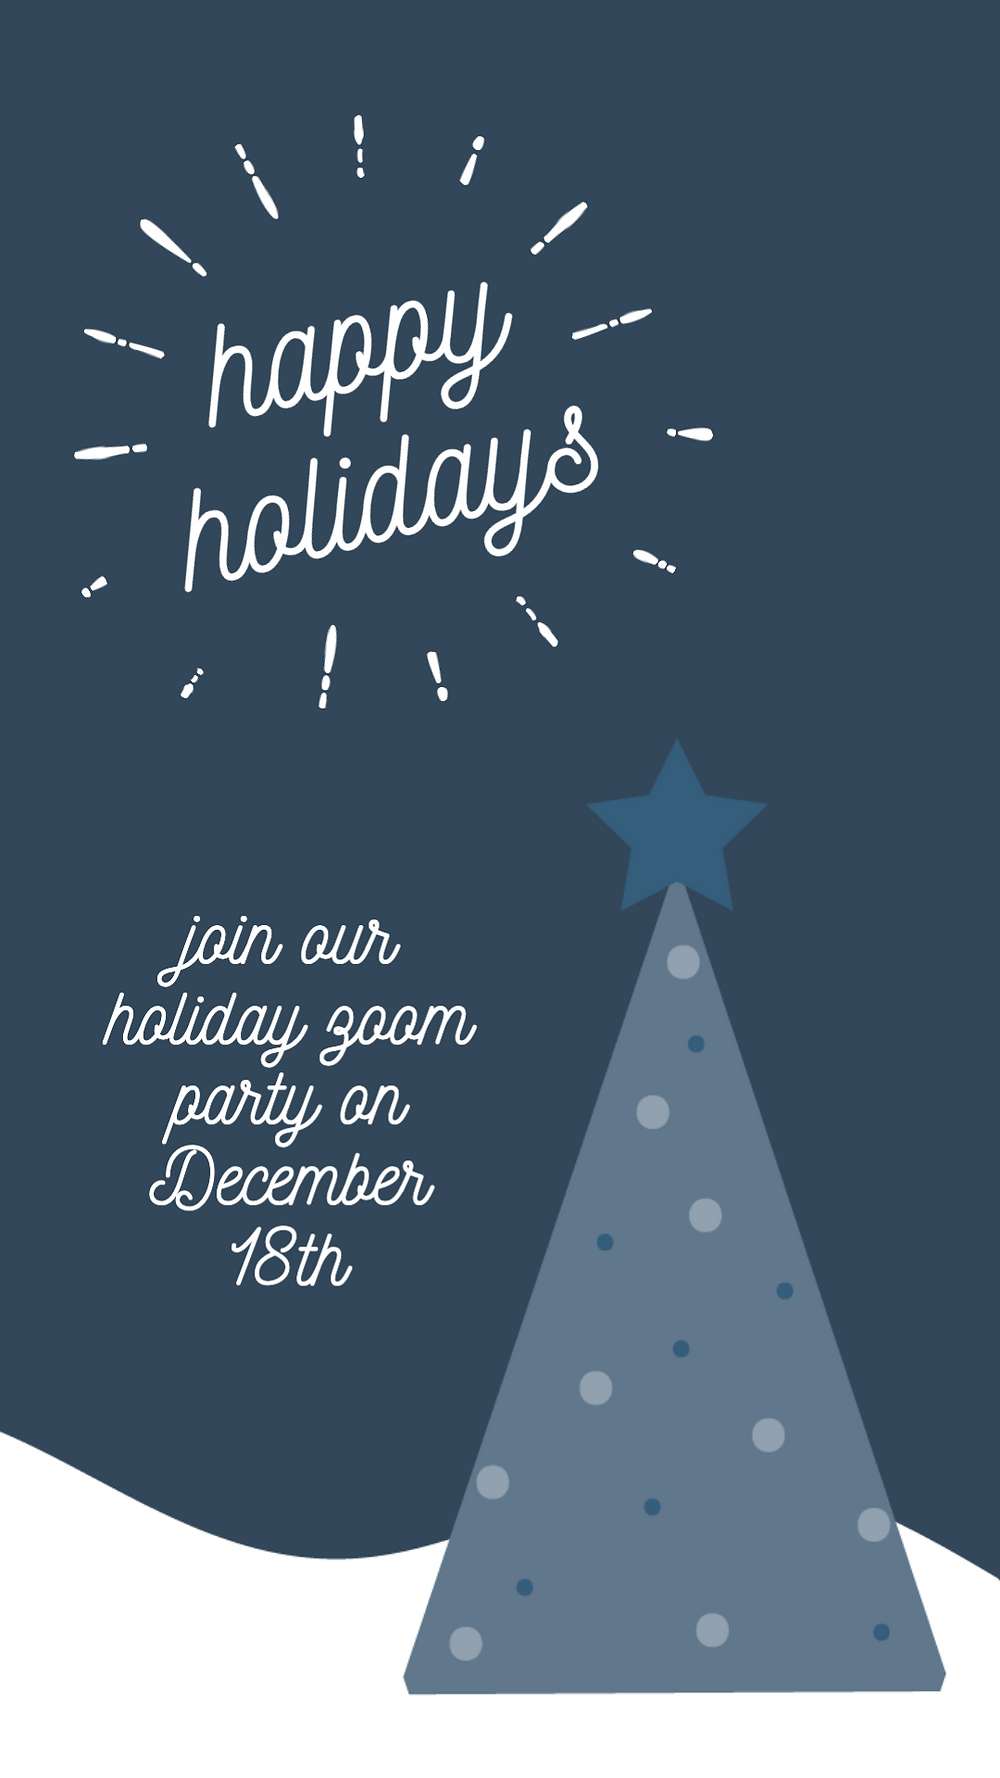 Happy holidays navy blue social media story template with Christmas tree graphic and snow